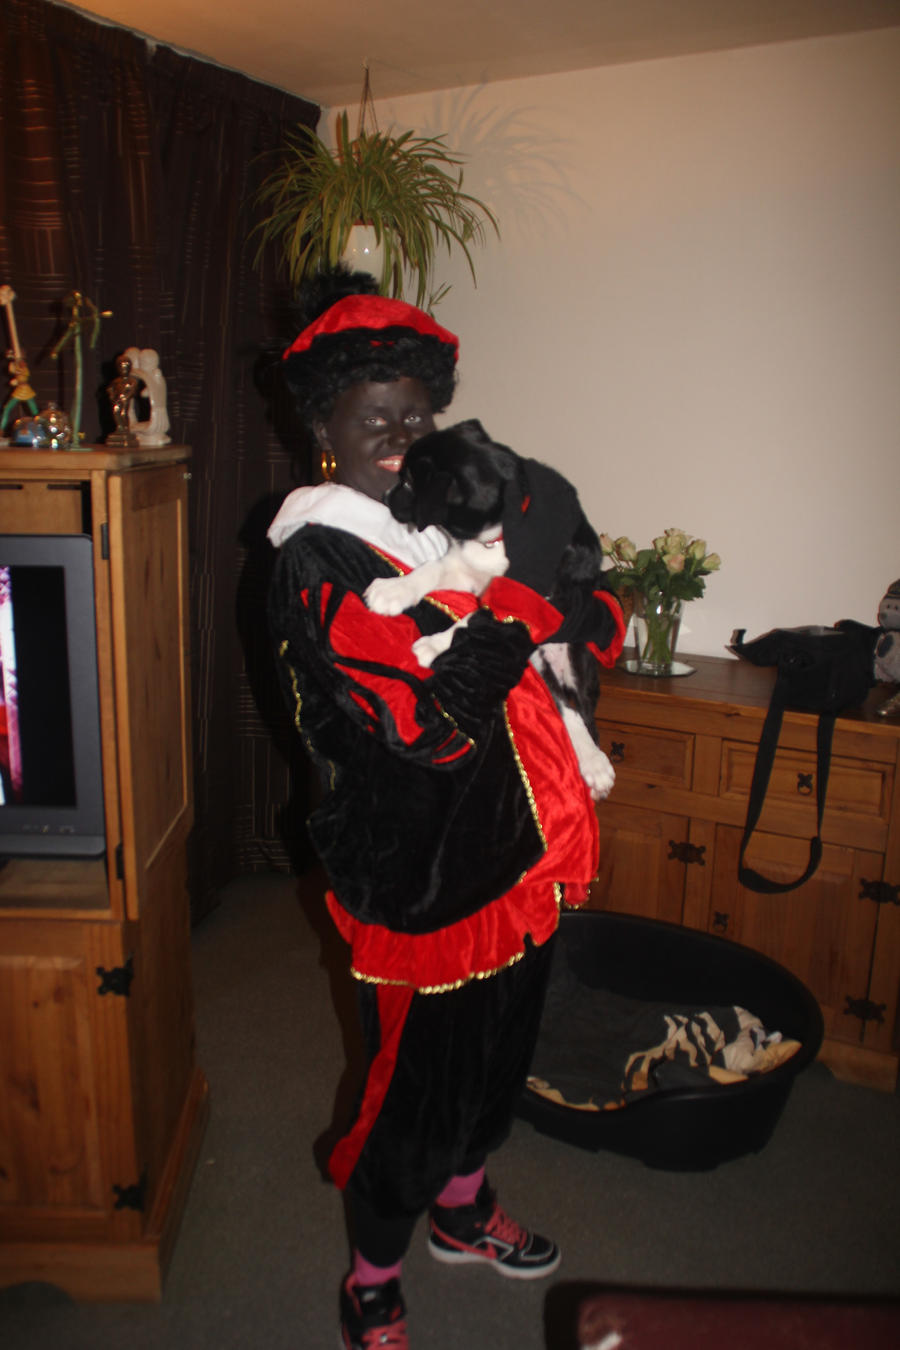 12-12-05 Zwarte Piet and Mickey by Herdervriend